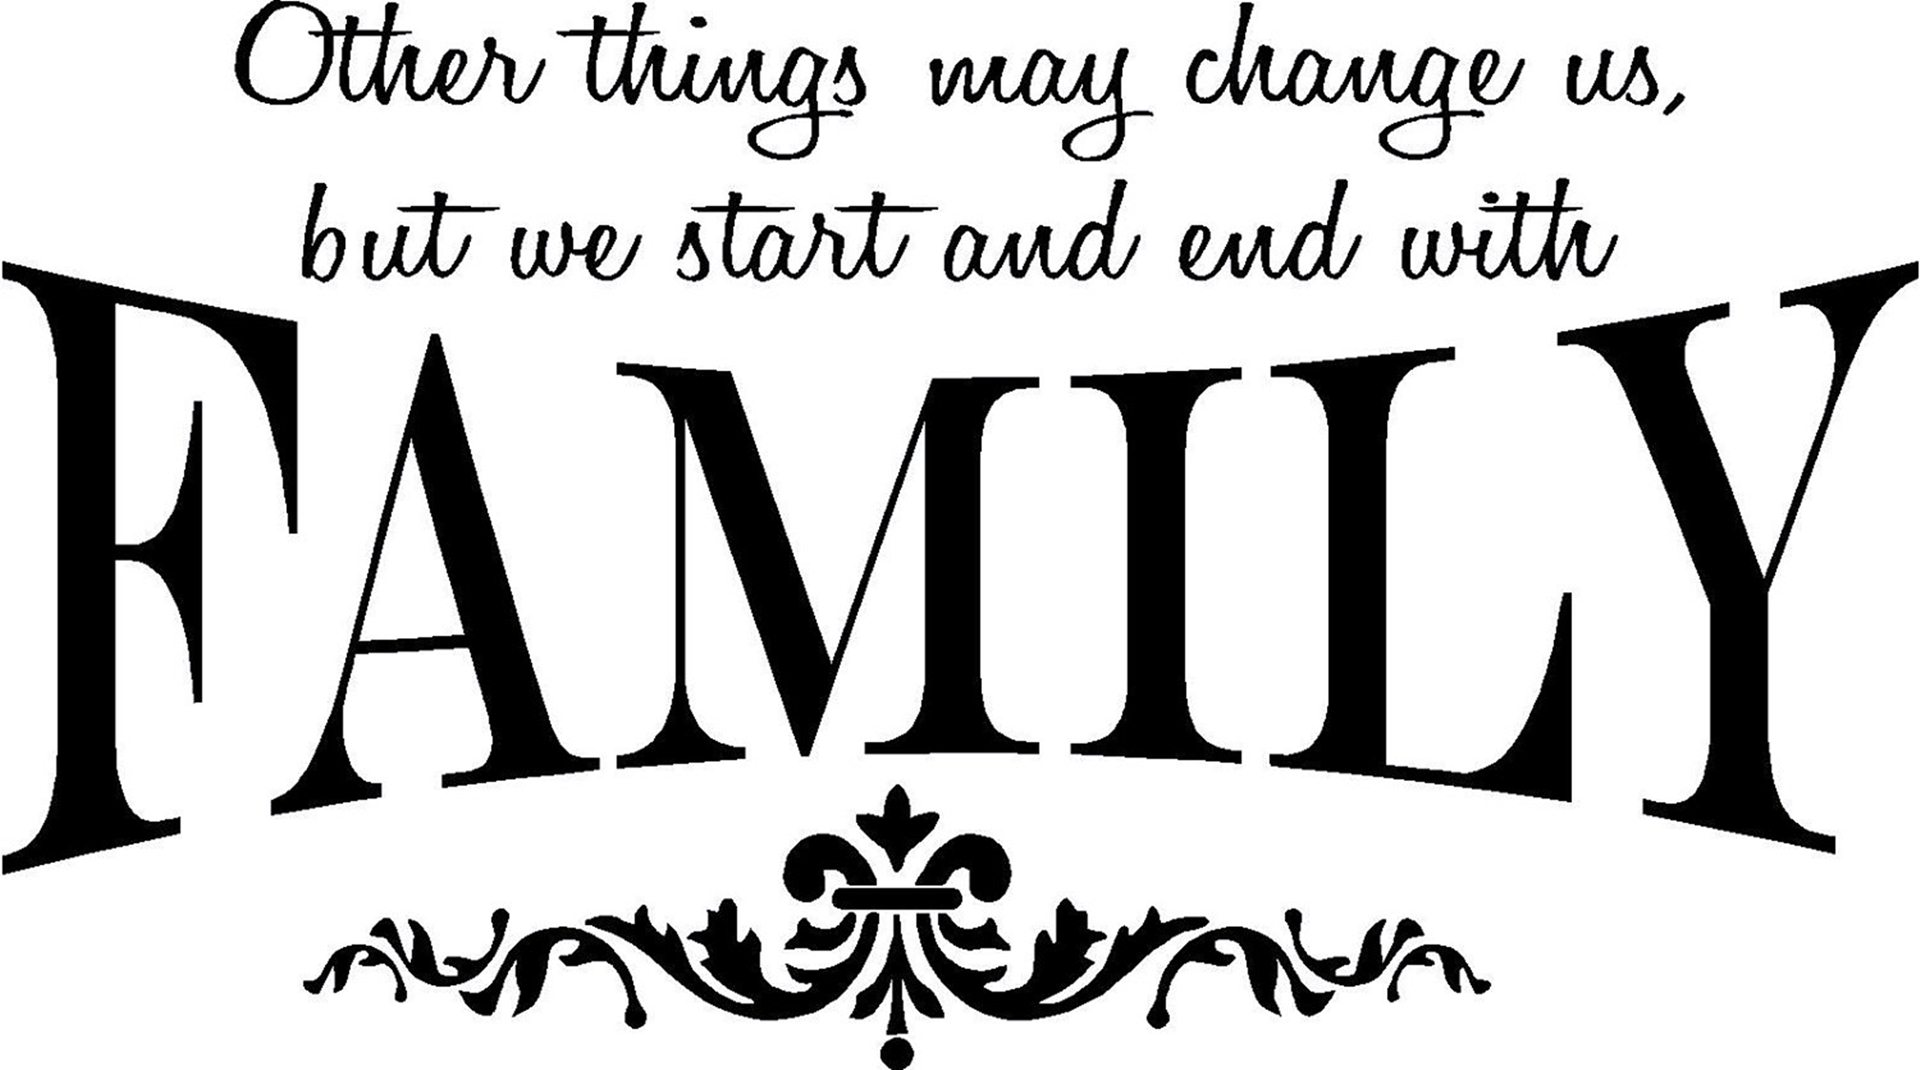 30 Lovely Family Quotes And Sayings Family Name Images Hd 1920x1070 Download Hd Wallpaper Wallpapertip